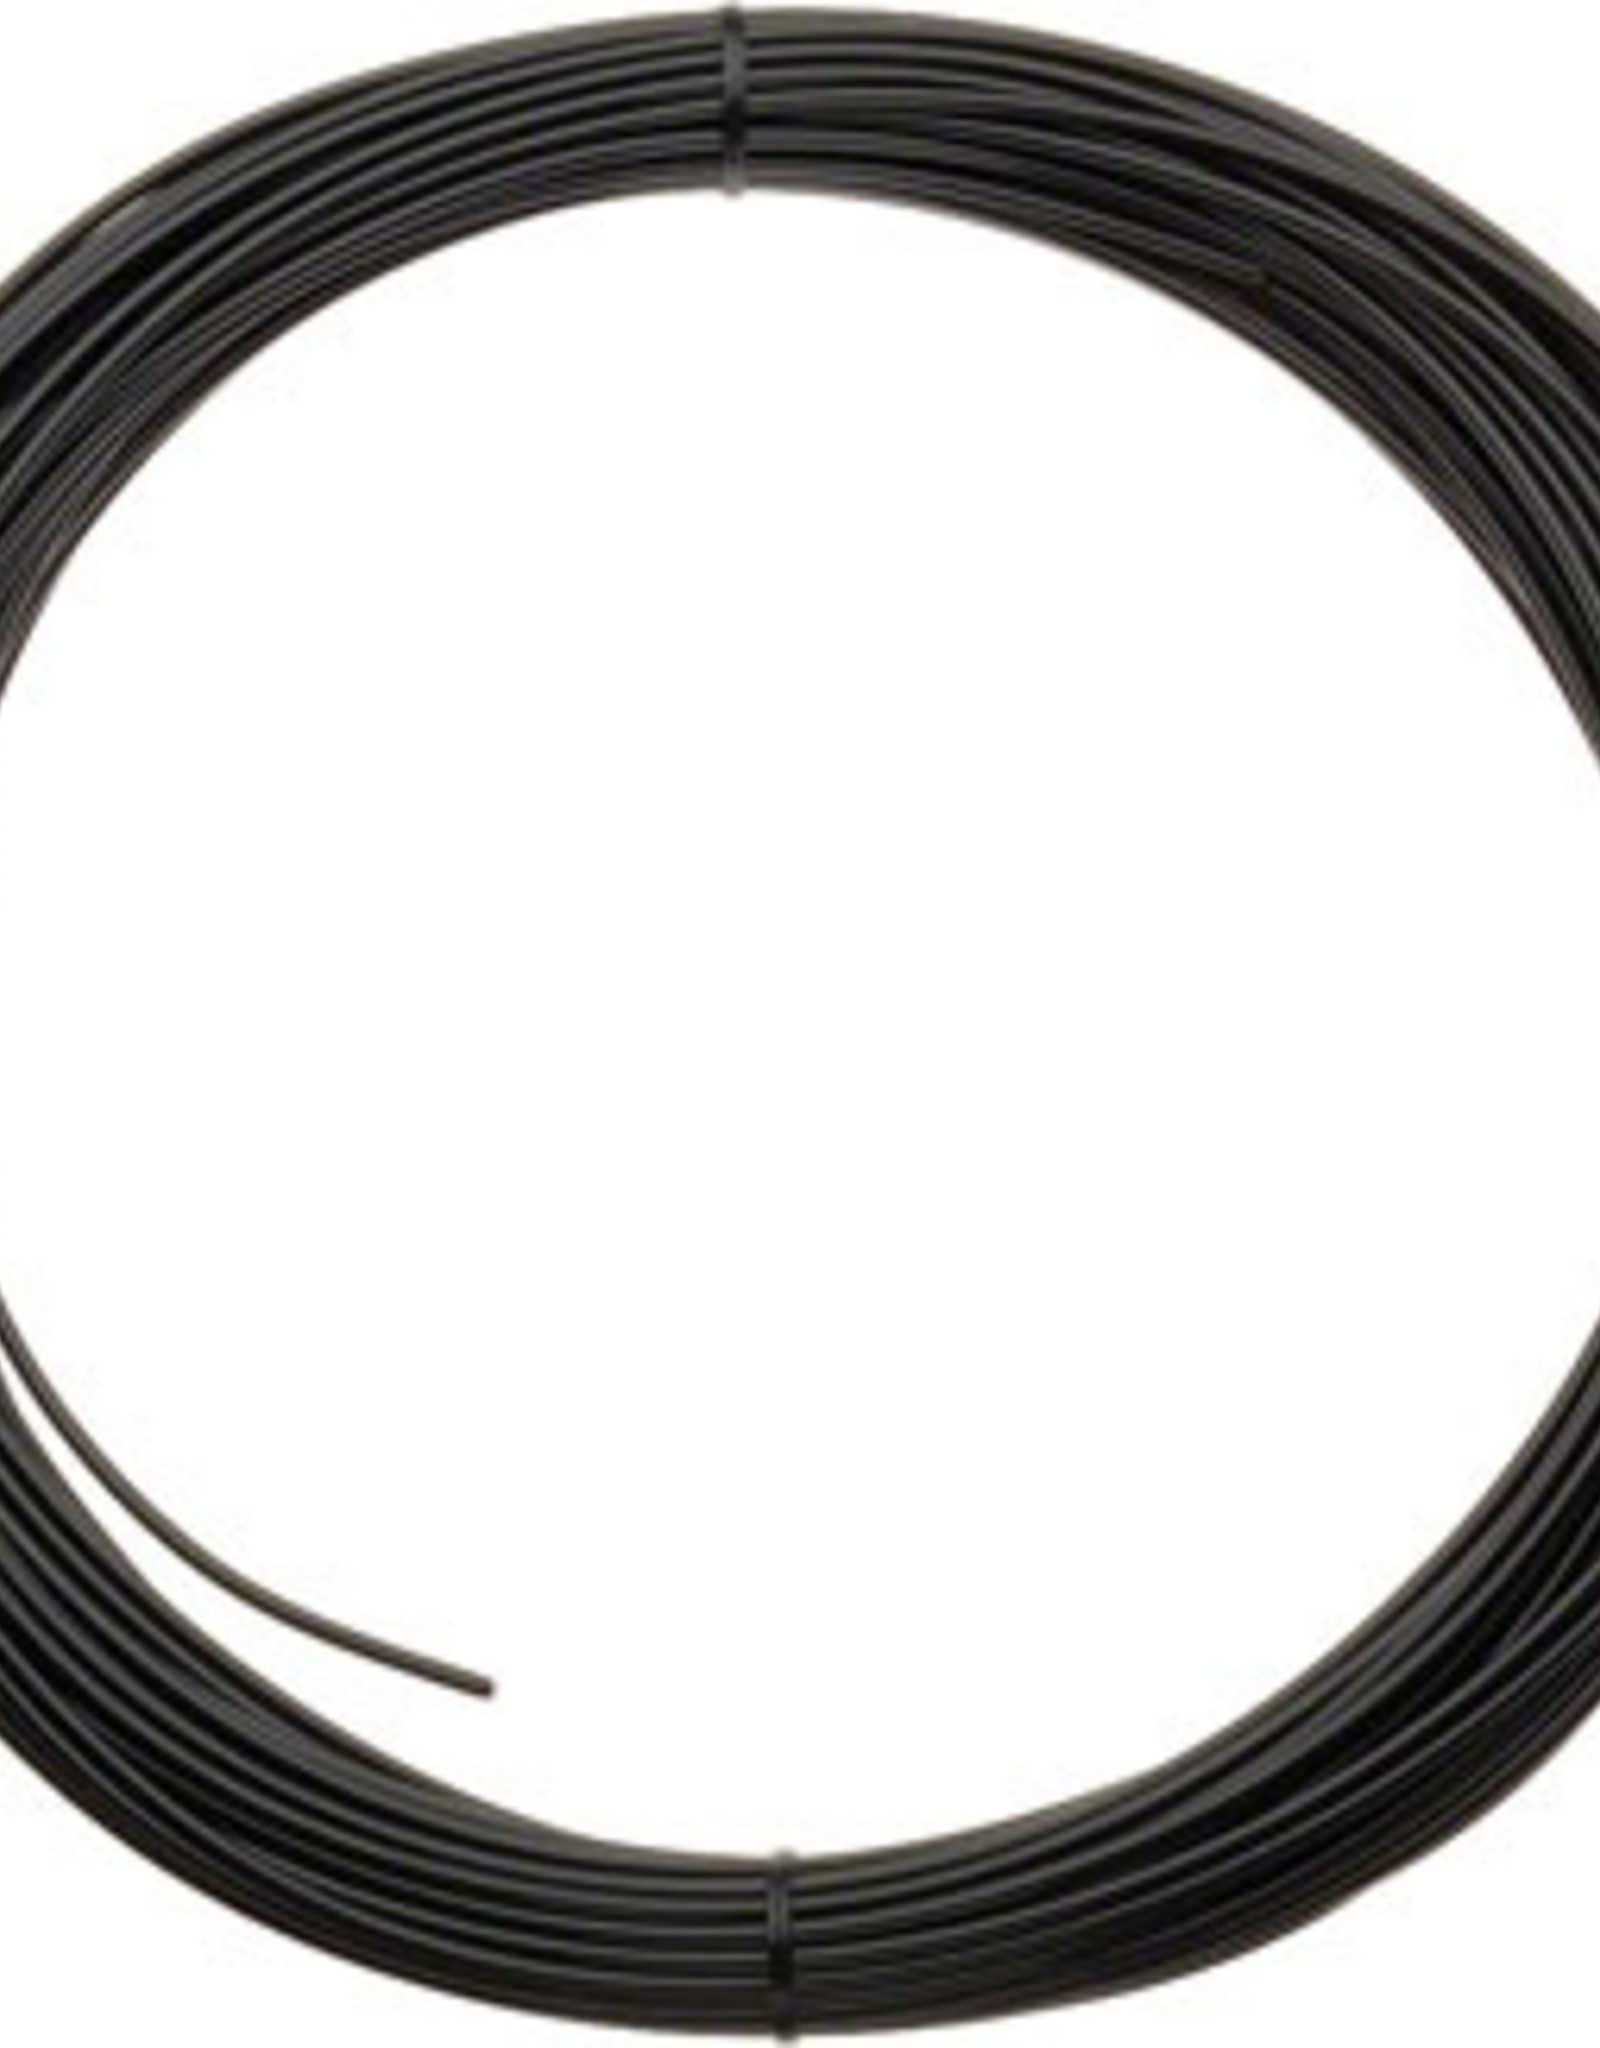 Jagwire Black Housing Liner, per foot